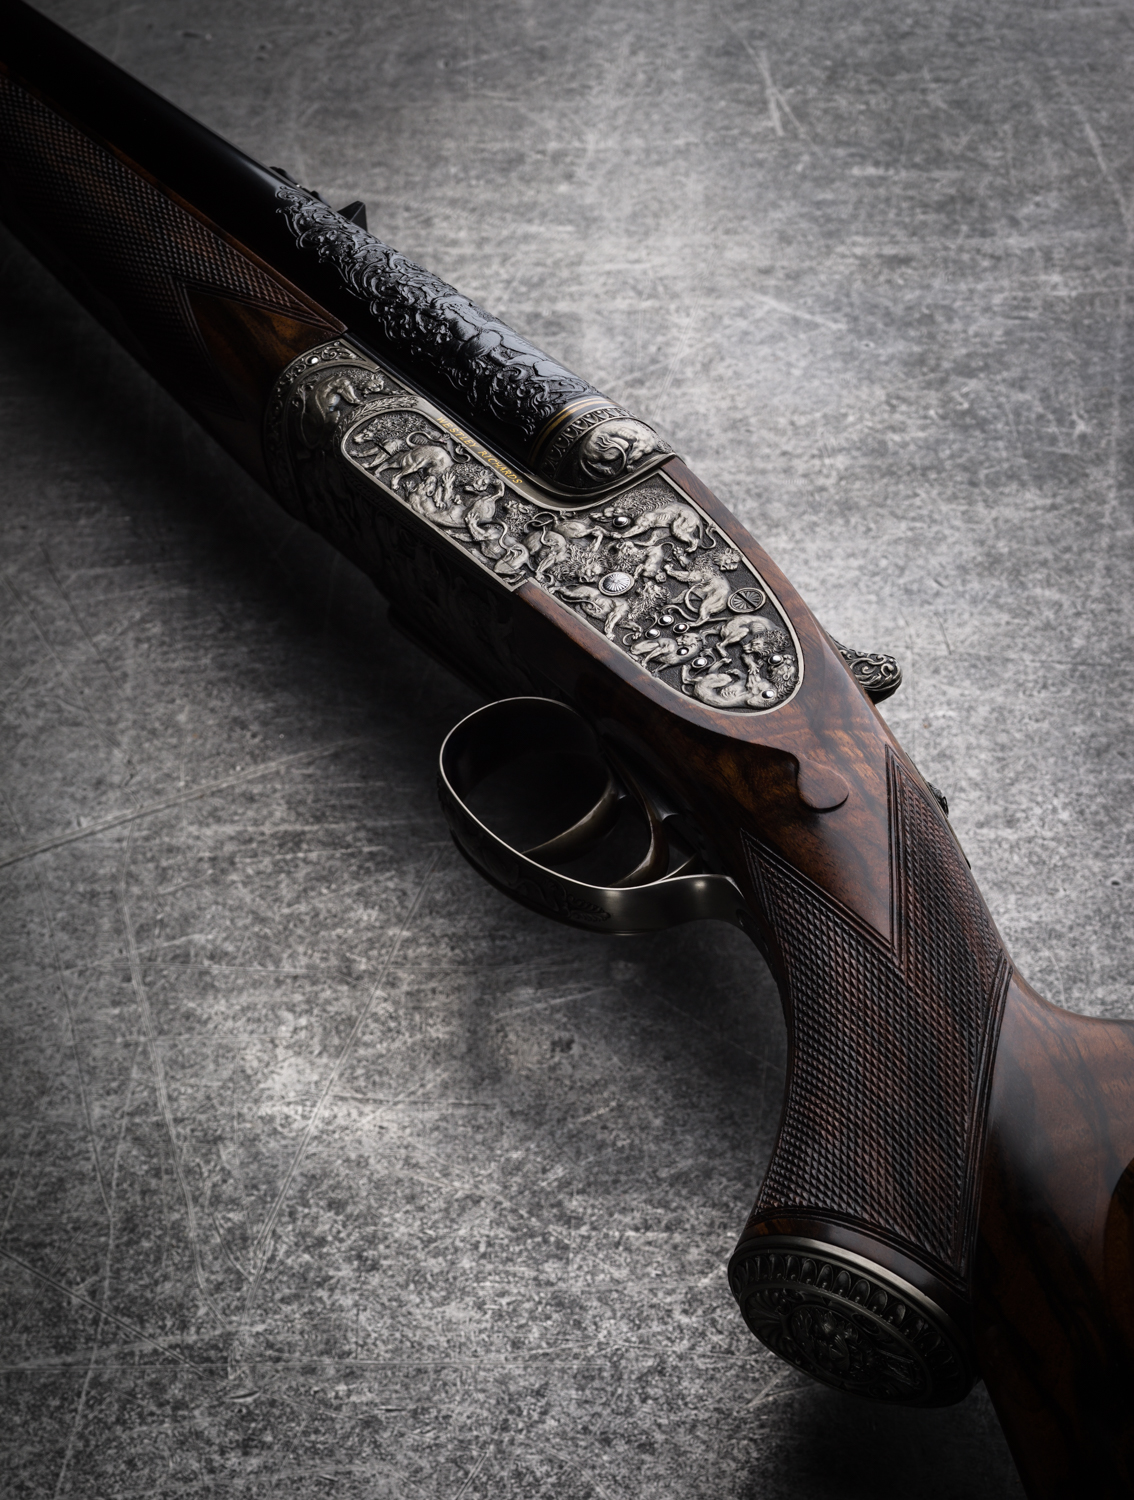 The Westley Richards Lion Rifle